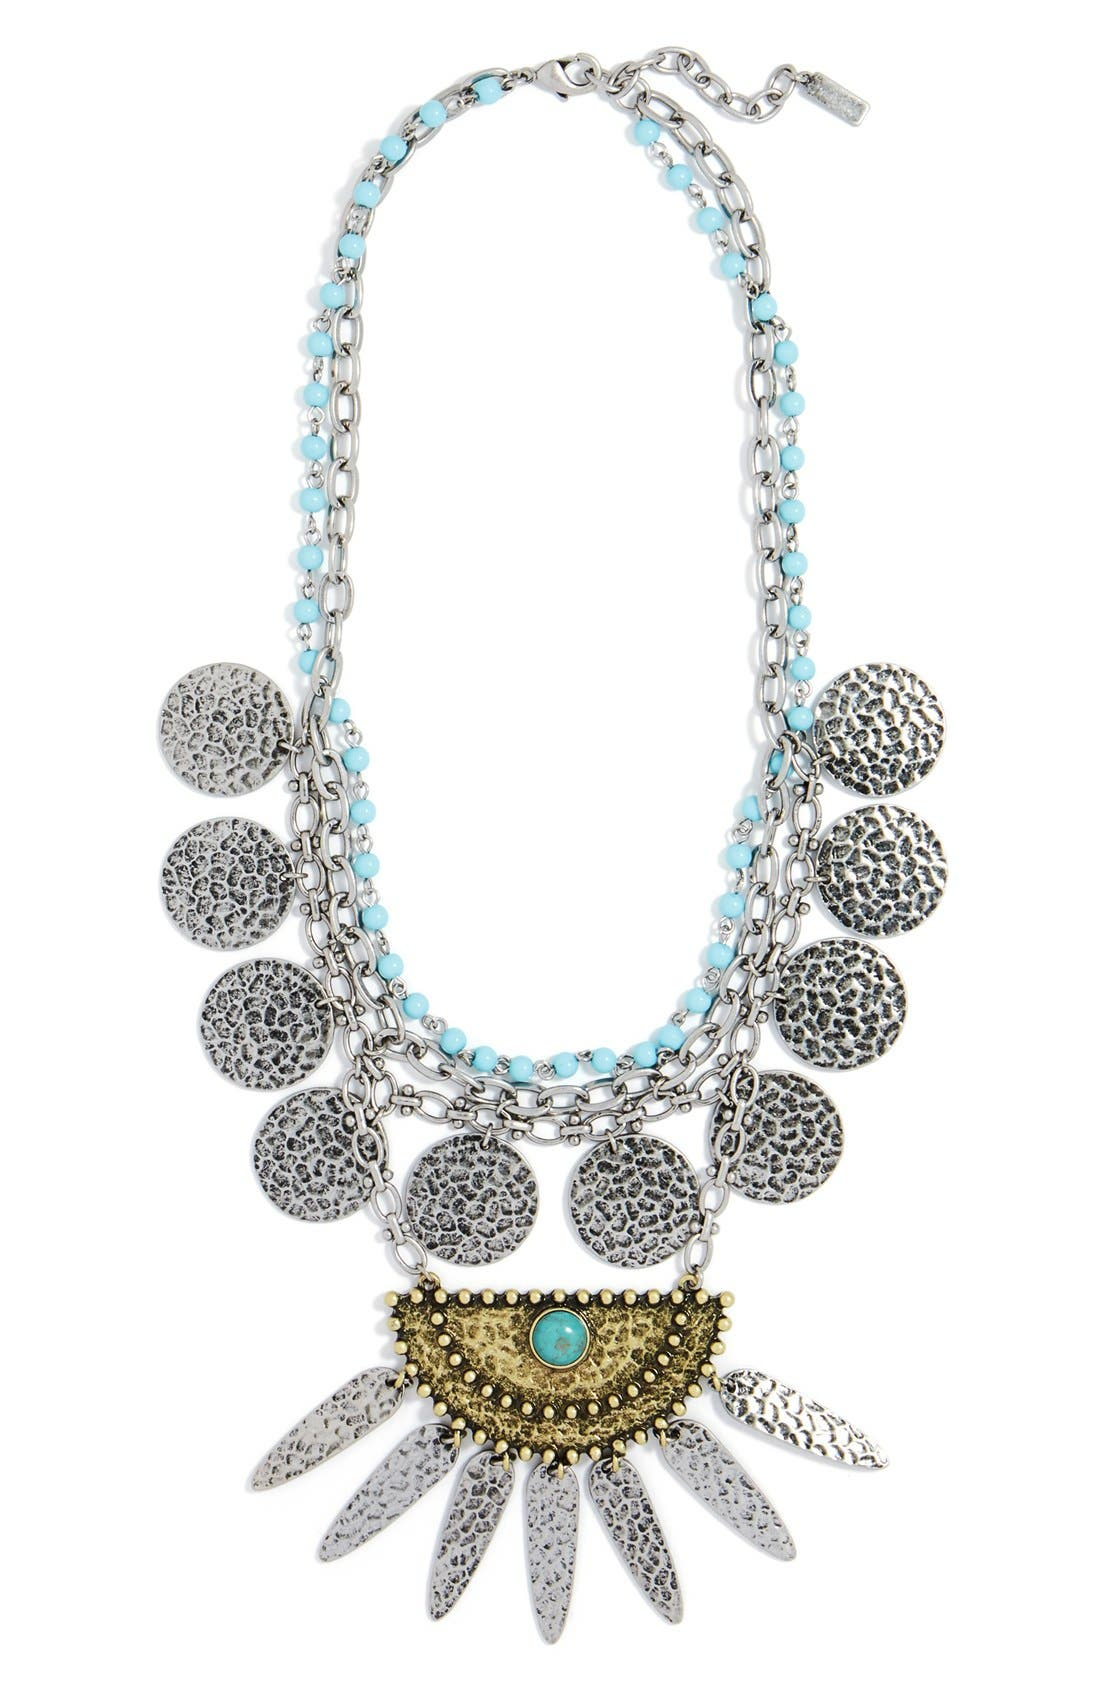 Alternate Image 1 Selected - BaubleBar 'Galapagos' Statement Necklace